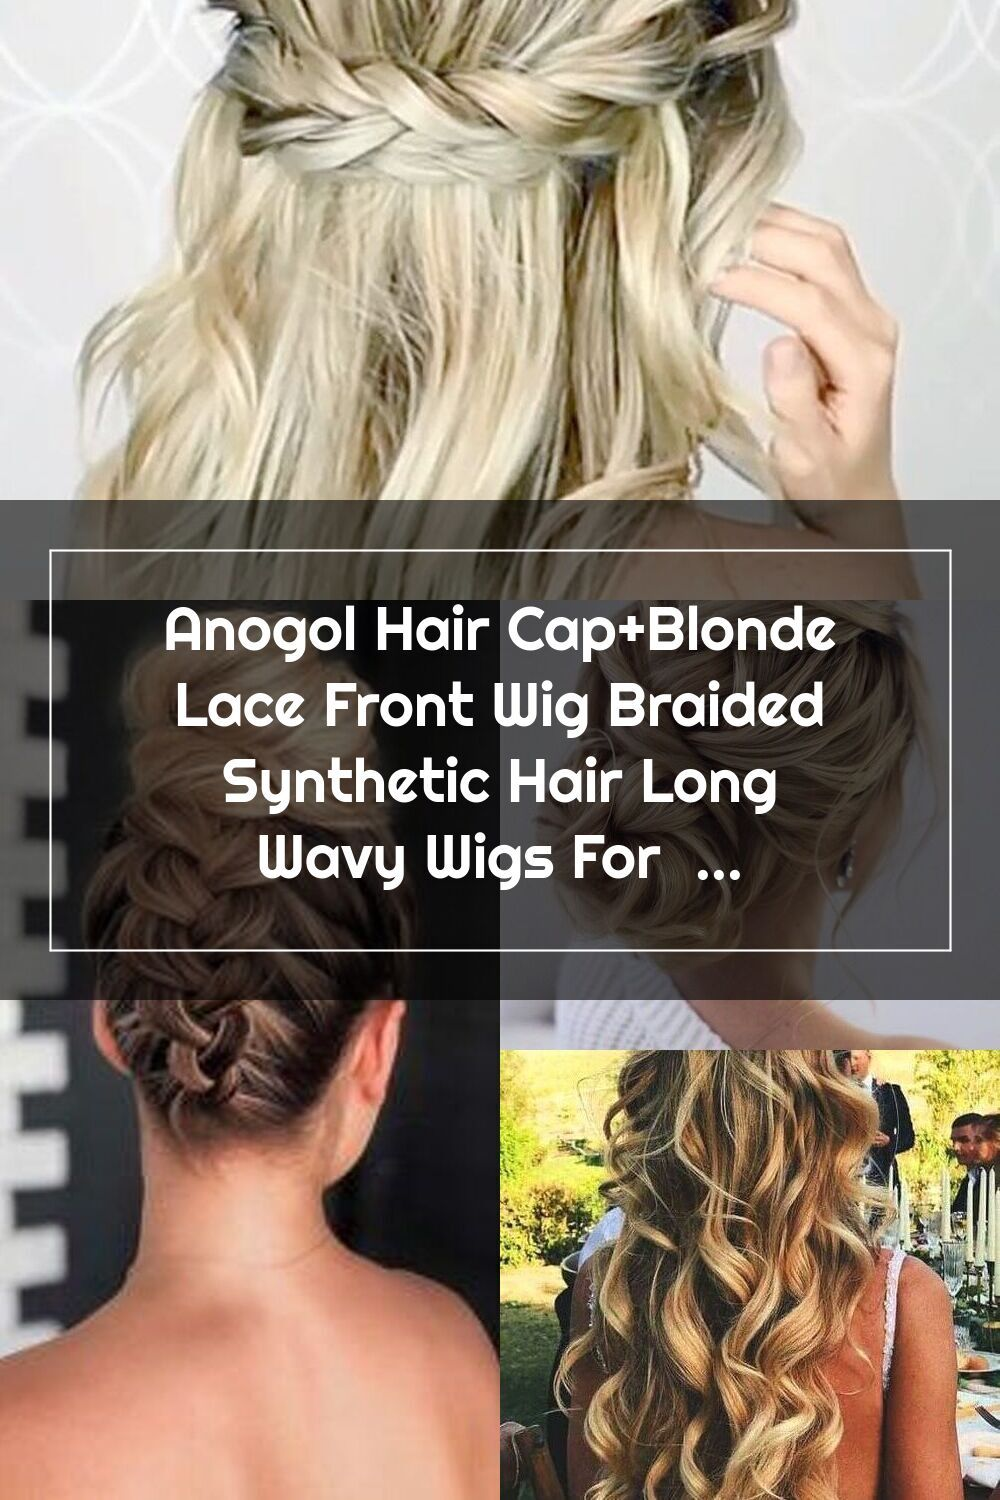 Hair Of The Dog Drink, Hairspray Product in 2020 Blonde